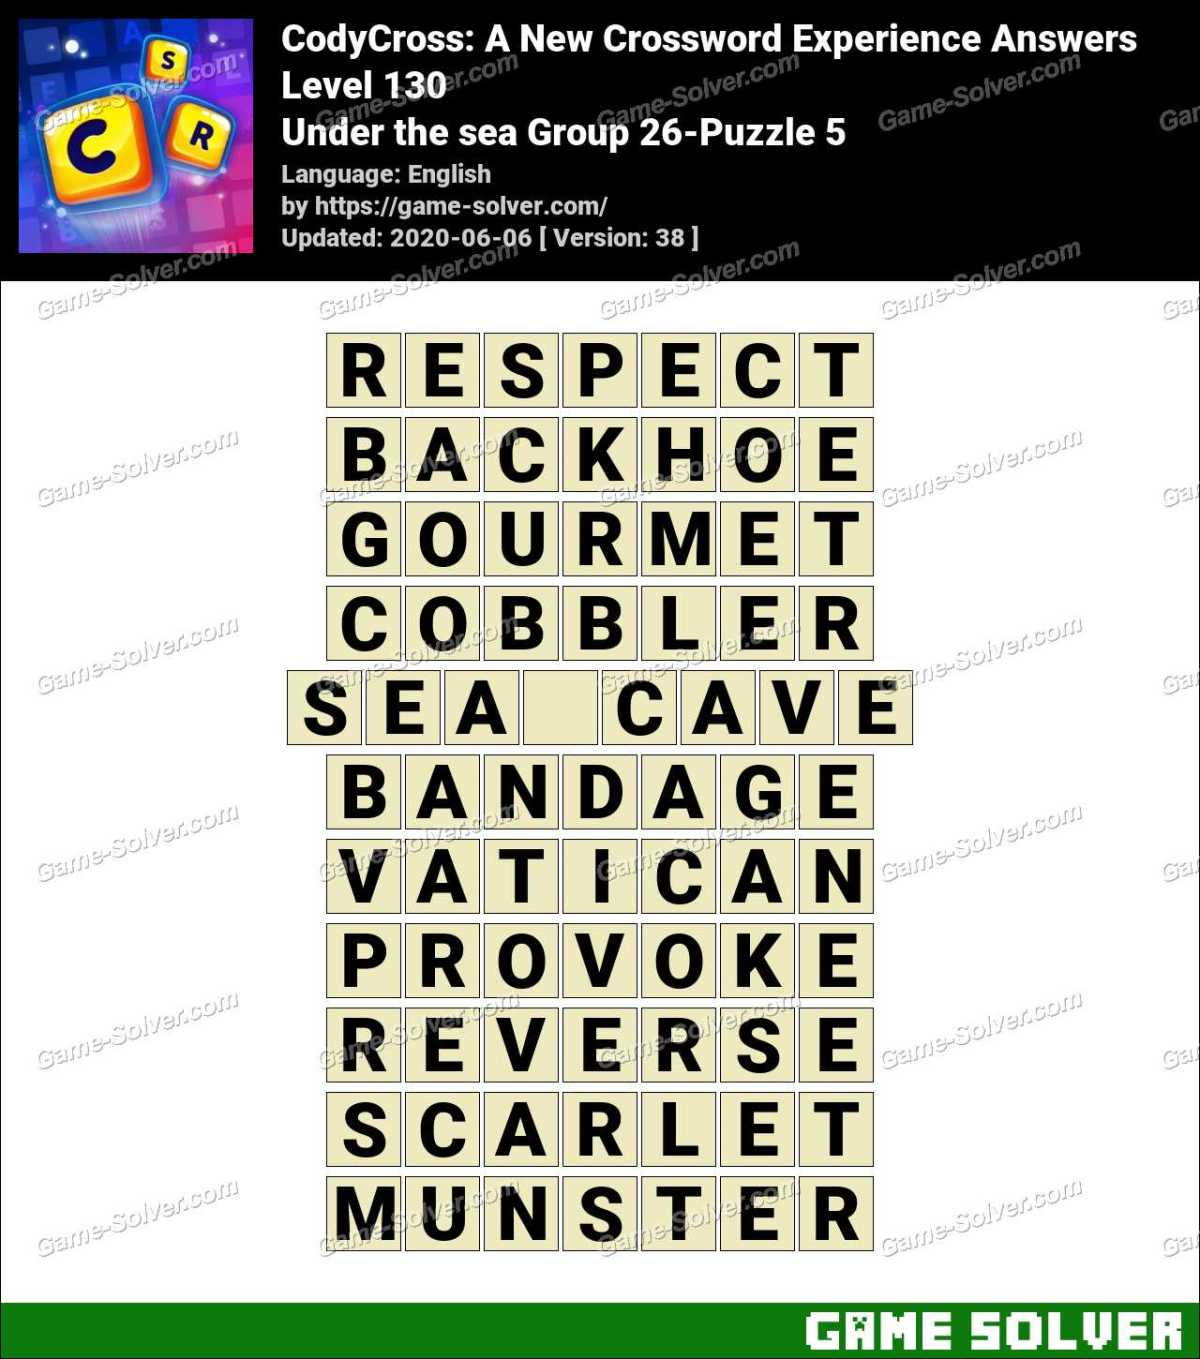 CodyCross Under the sea Group 26-Puzzle 5 Answers